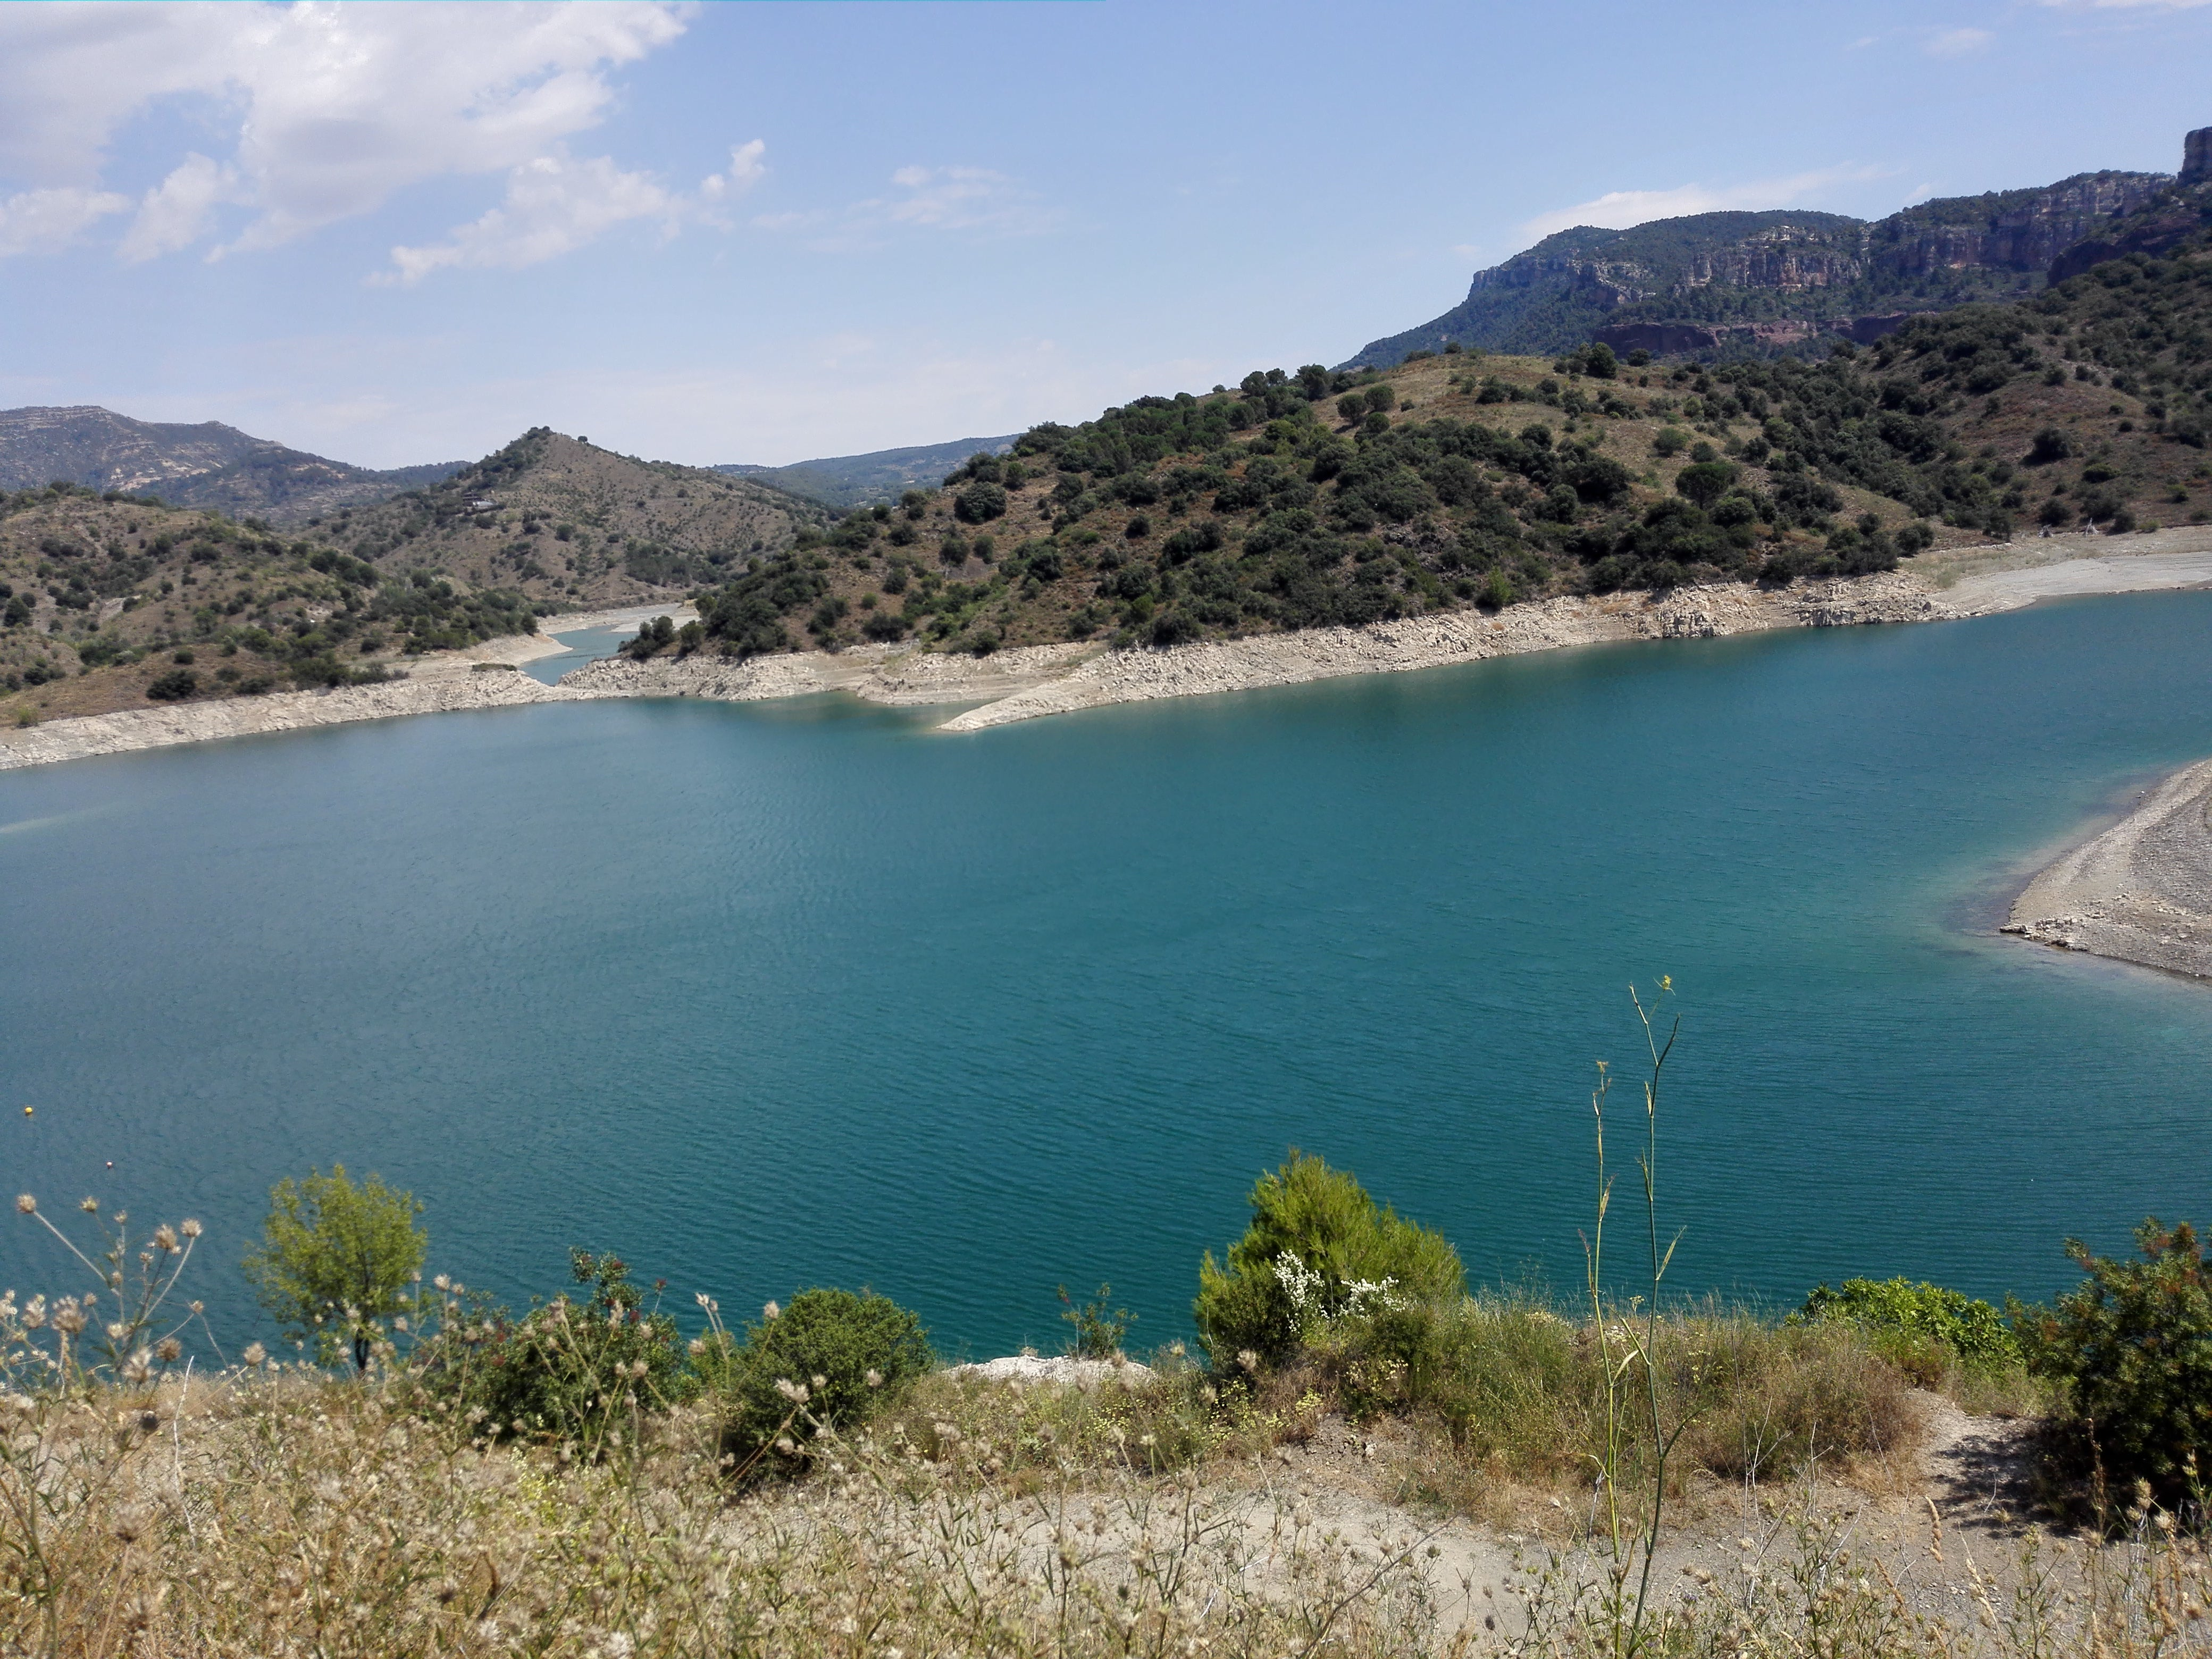 Relieve en Embalse de Siurana